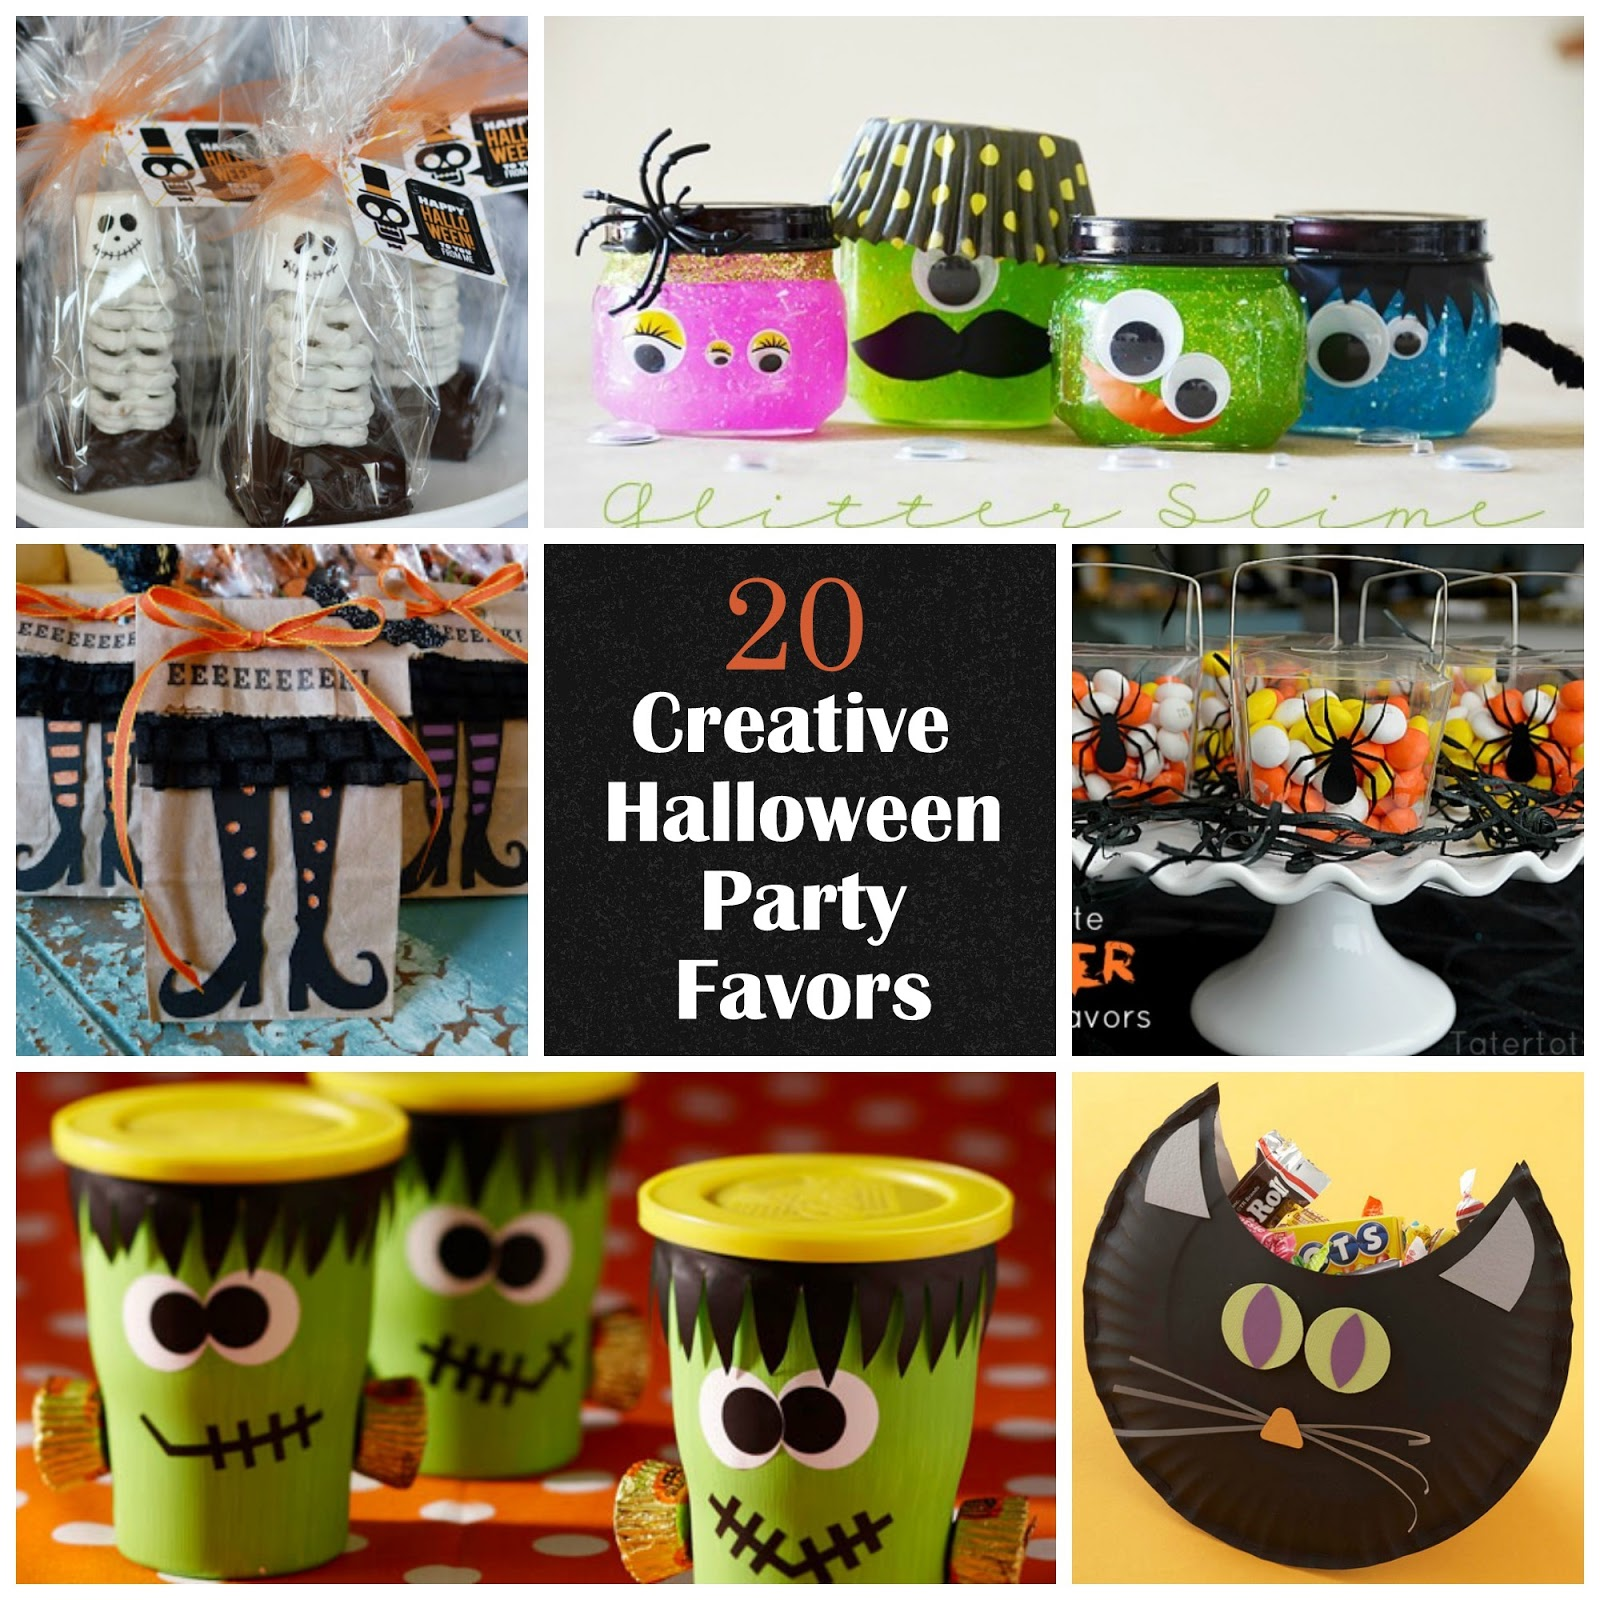 20 creative halloween party favors i dig pinterest for Halloween party favor ideas